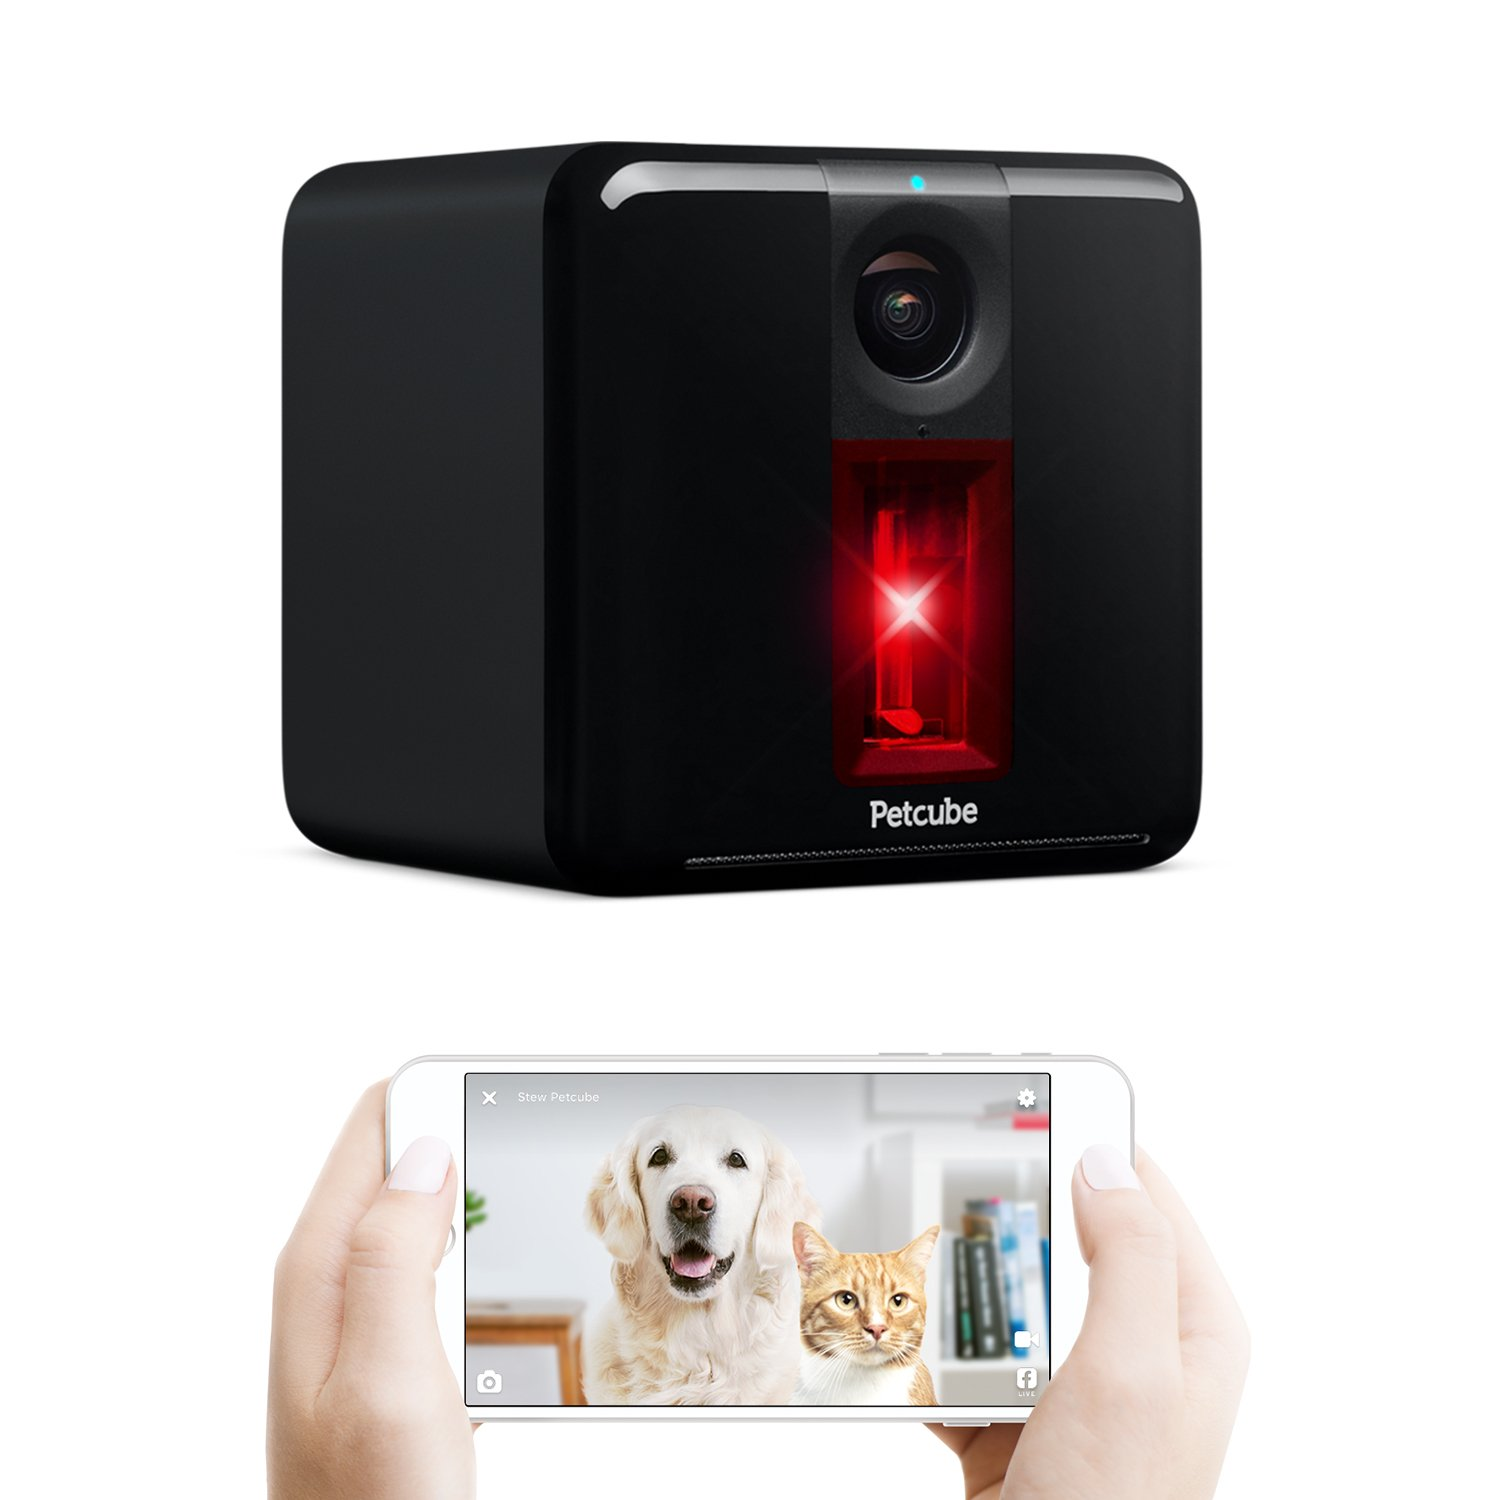 Petcube [2017 Item Play Smart Pet Camera with Interactive Laser Toy. Remote Dog/Cat Monitoring with HD 1080p Video, Two-Way Audio, Night Vision, Sound/Motion Alerts. App-Enabled Pet and Home Safety by Petcube